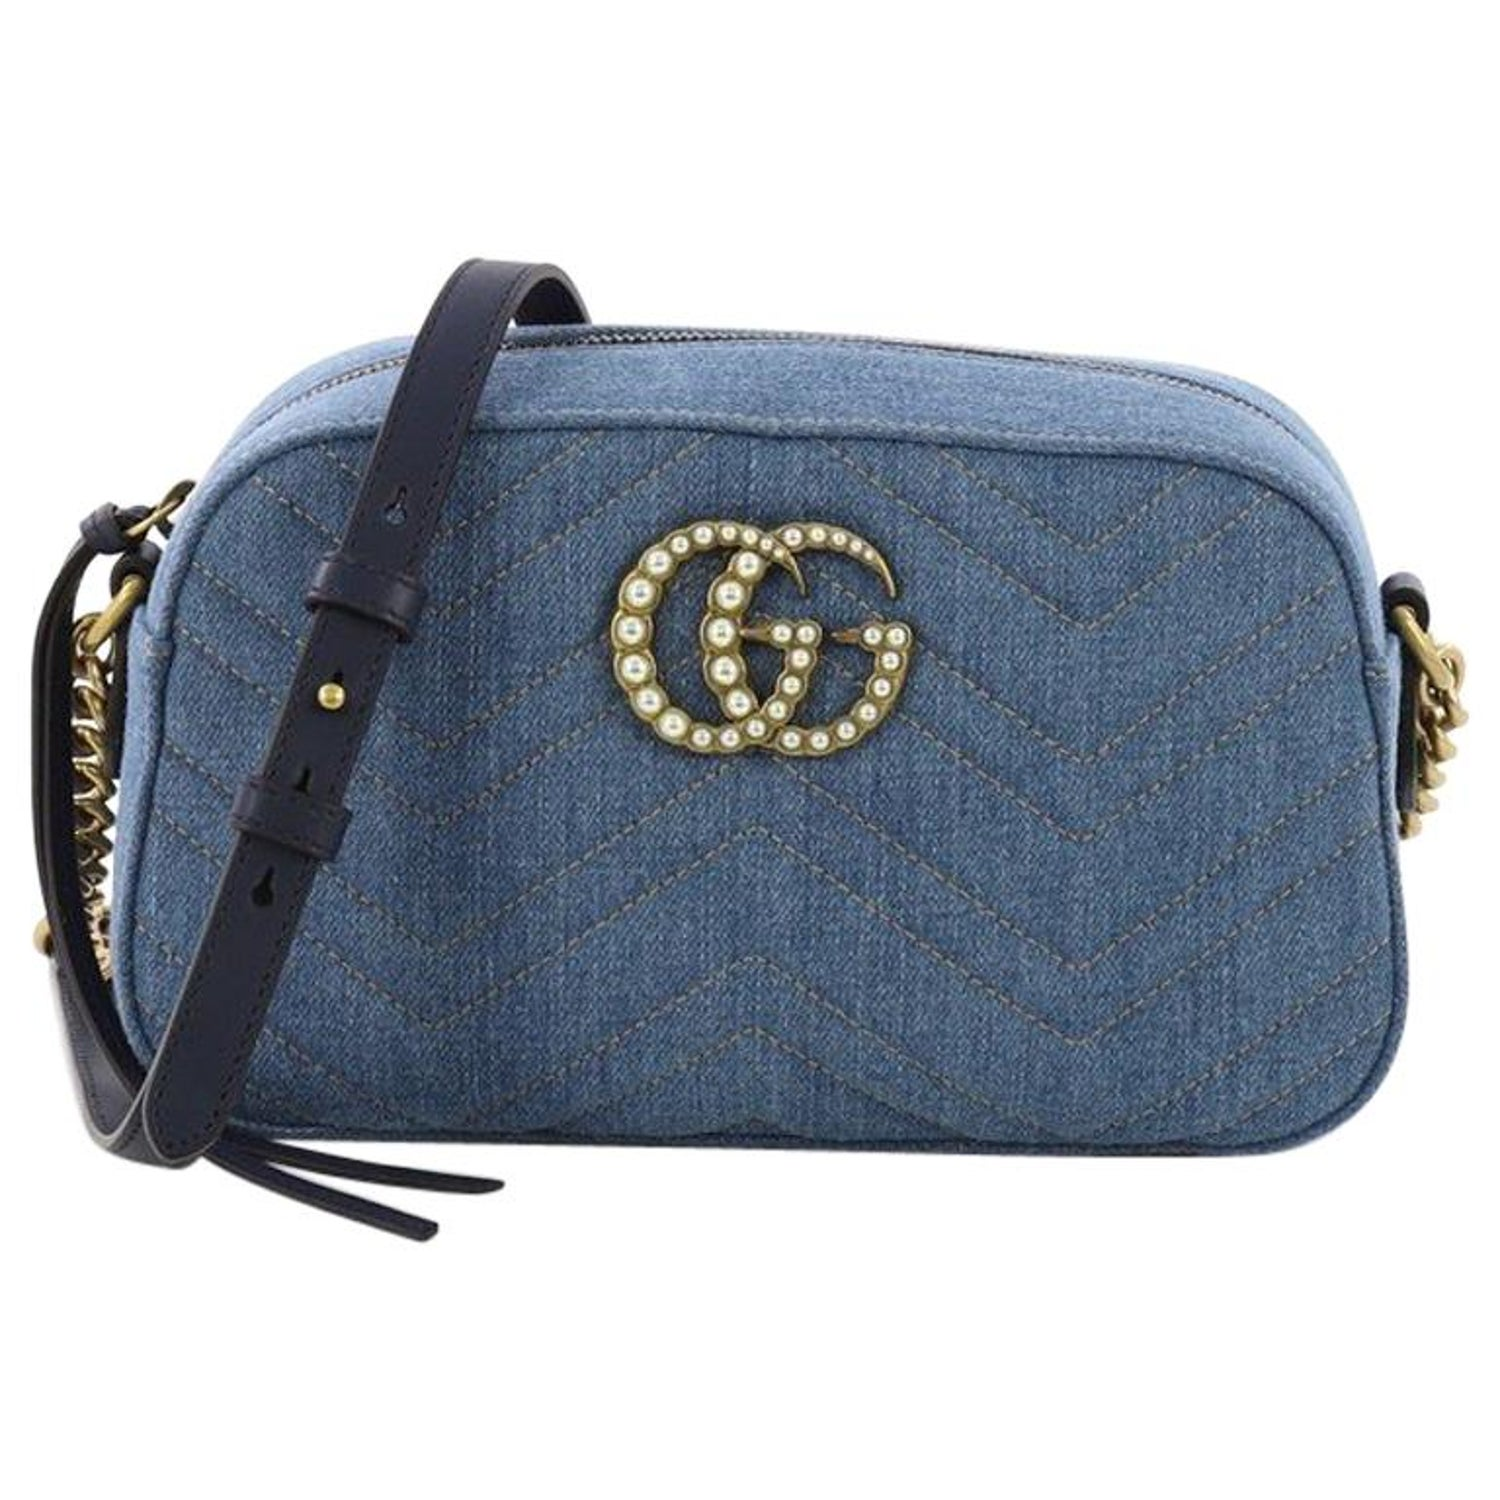 75232b12677ba8 Gucci Pearly GG Marmont Shoulder Bag Matelasse Denim Small at 1stdibs